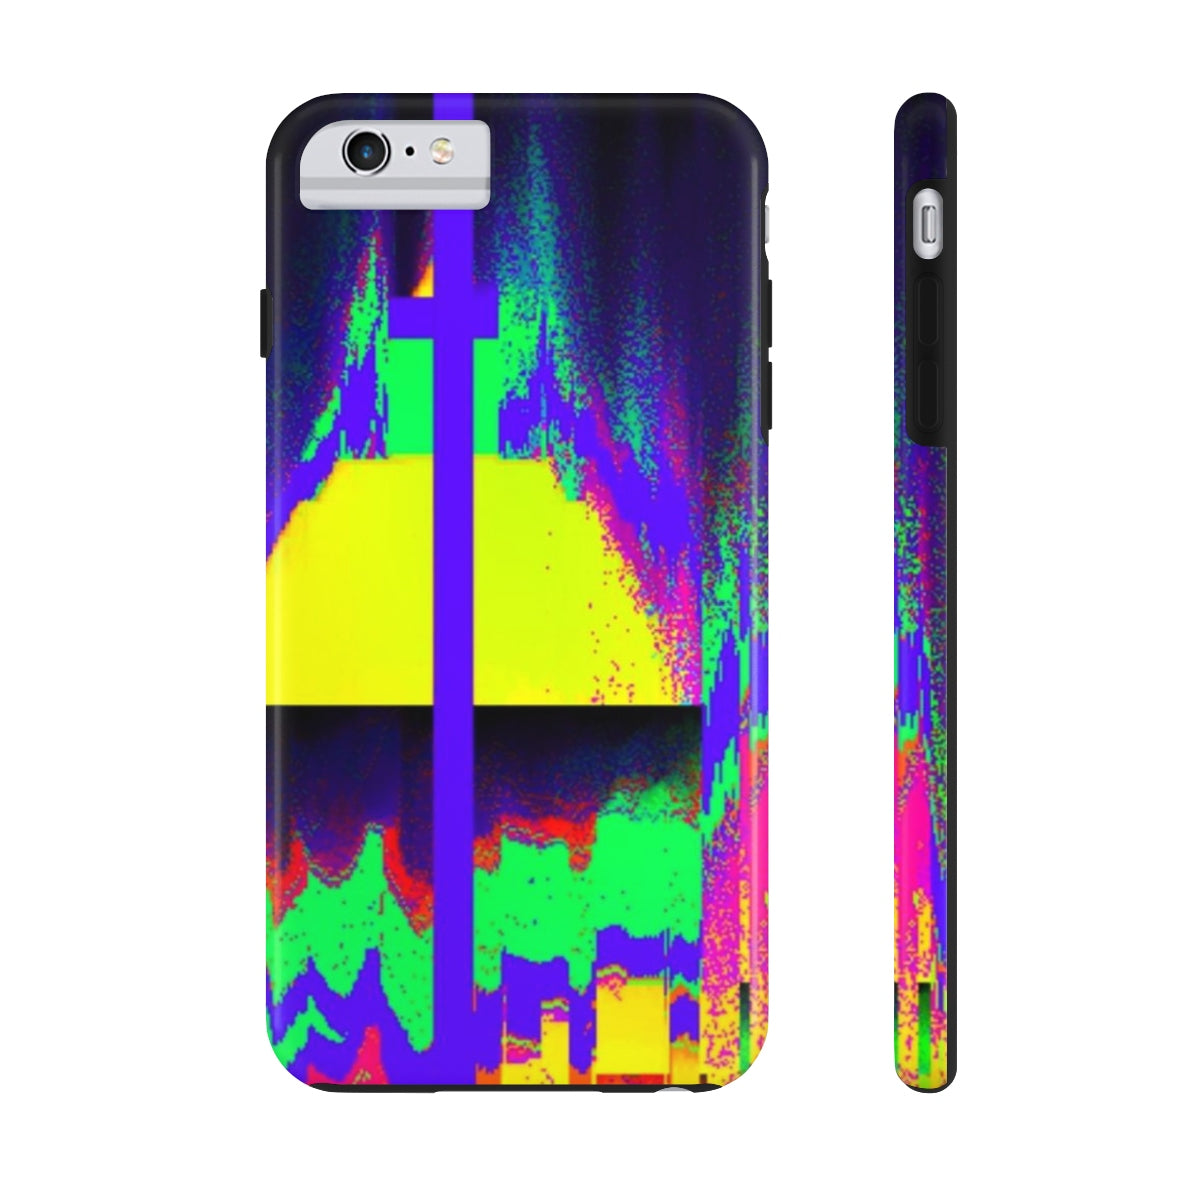 Trip Wave Tough Phone Case - Indigo G - Indigo G